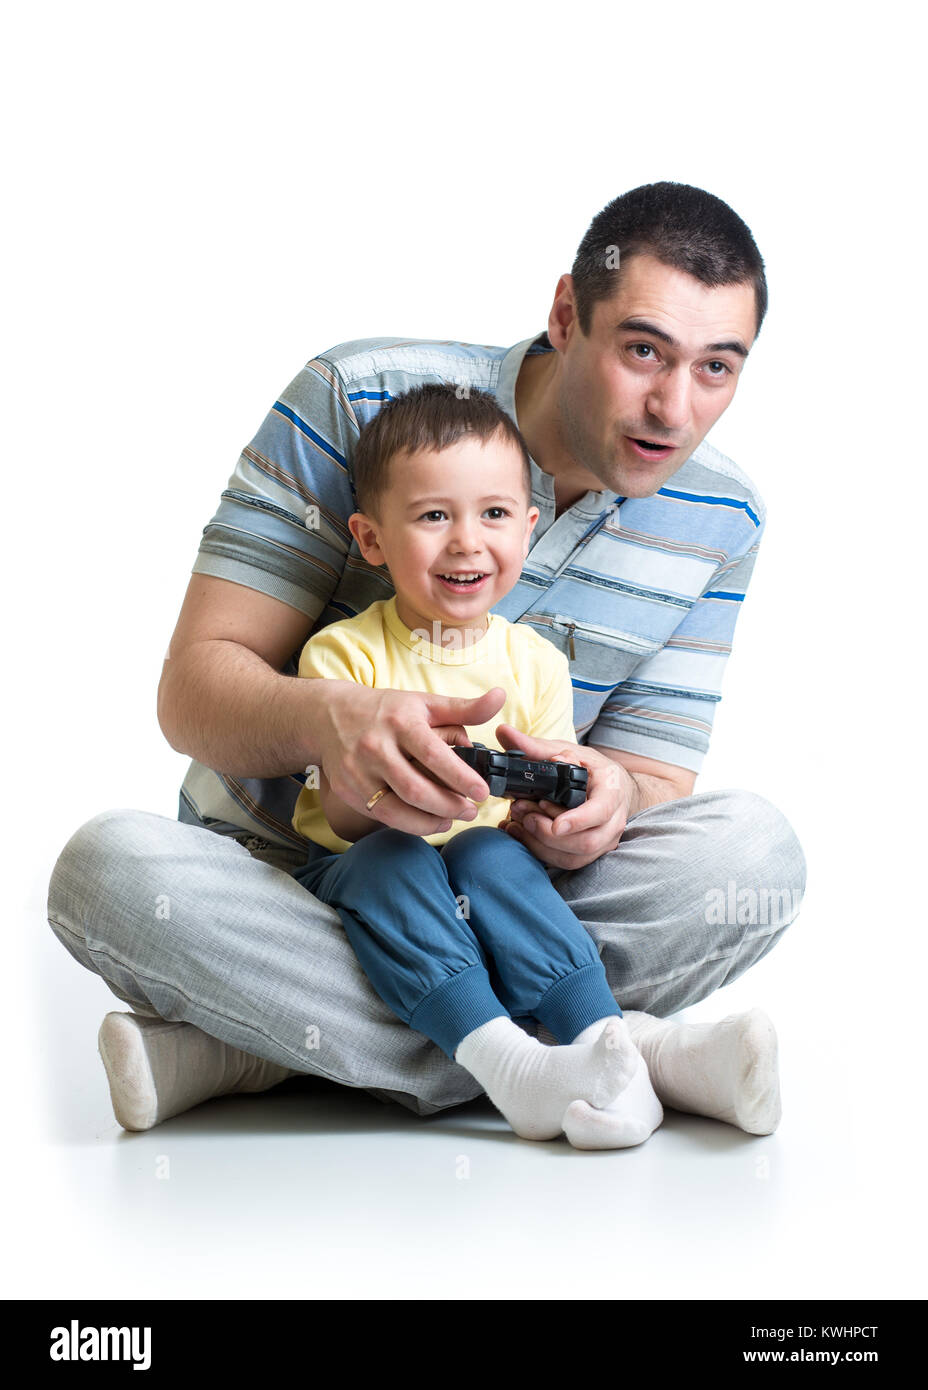 child boy and father play with a playstation together - Stock Image